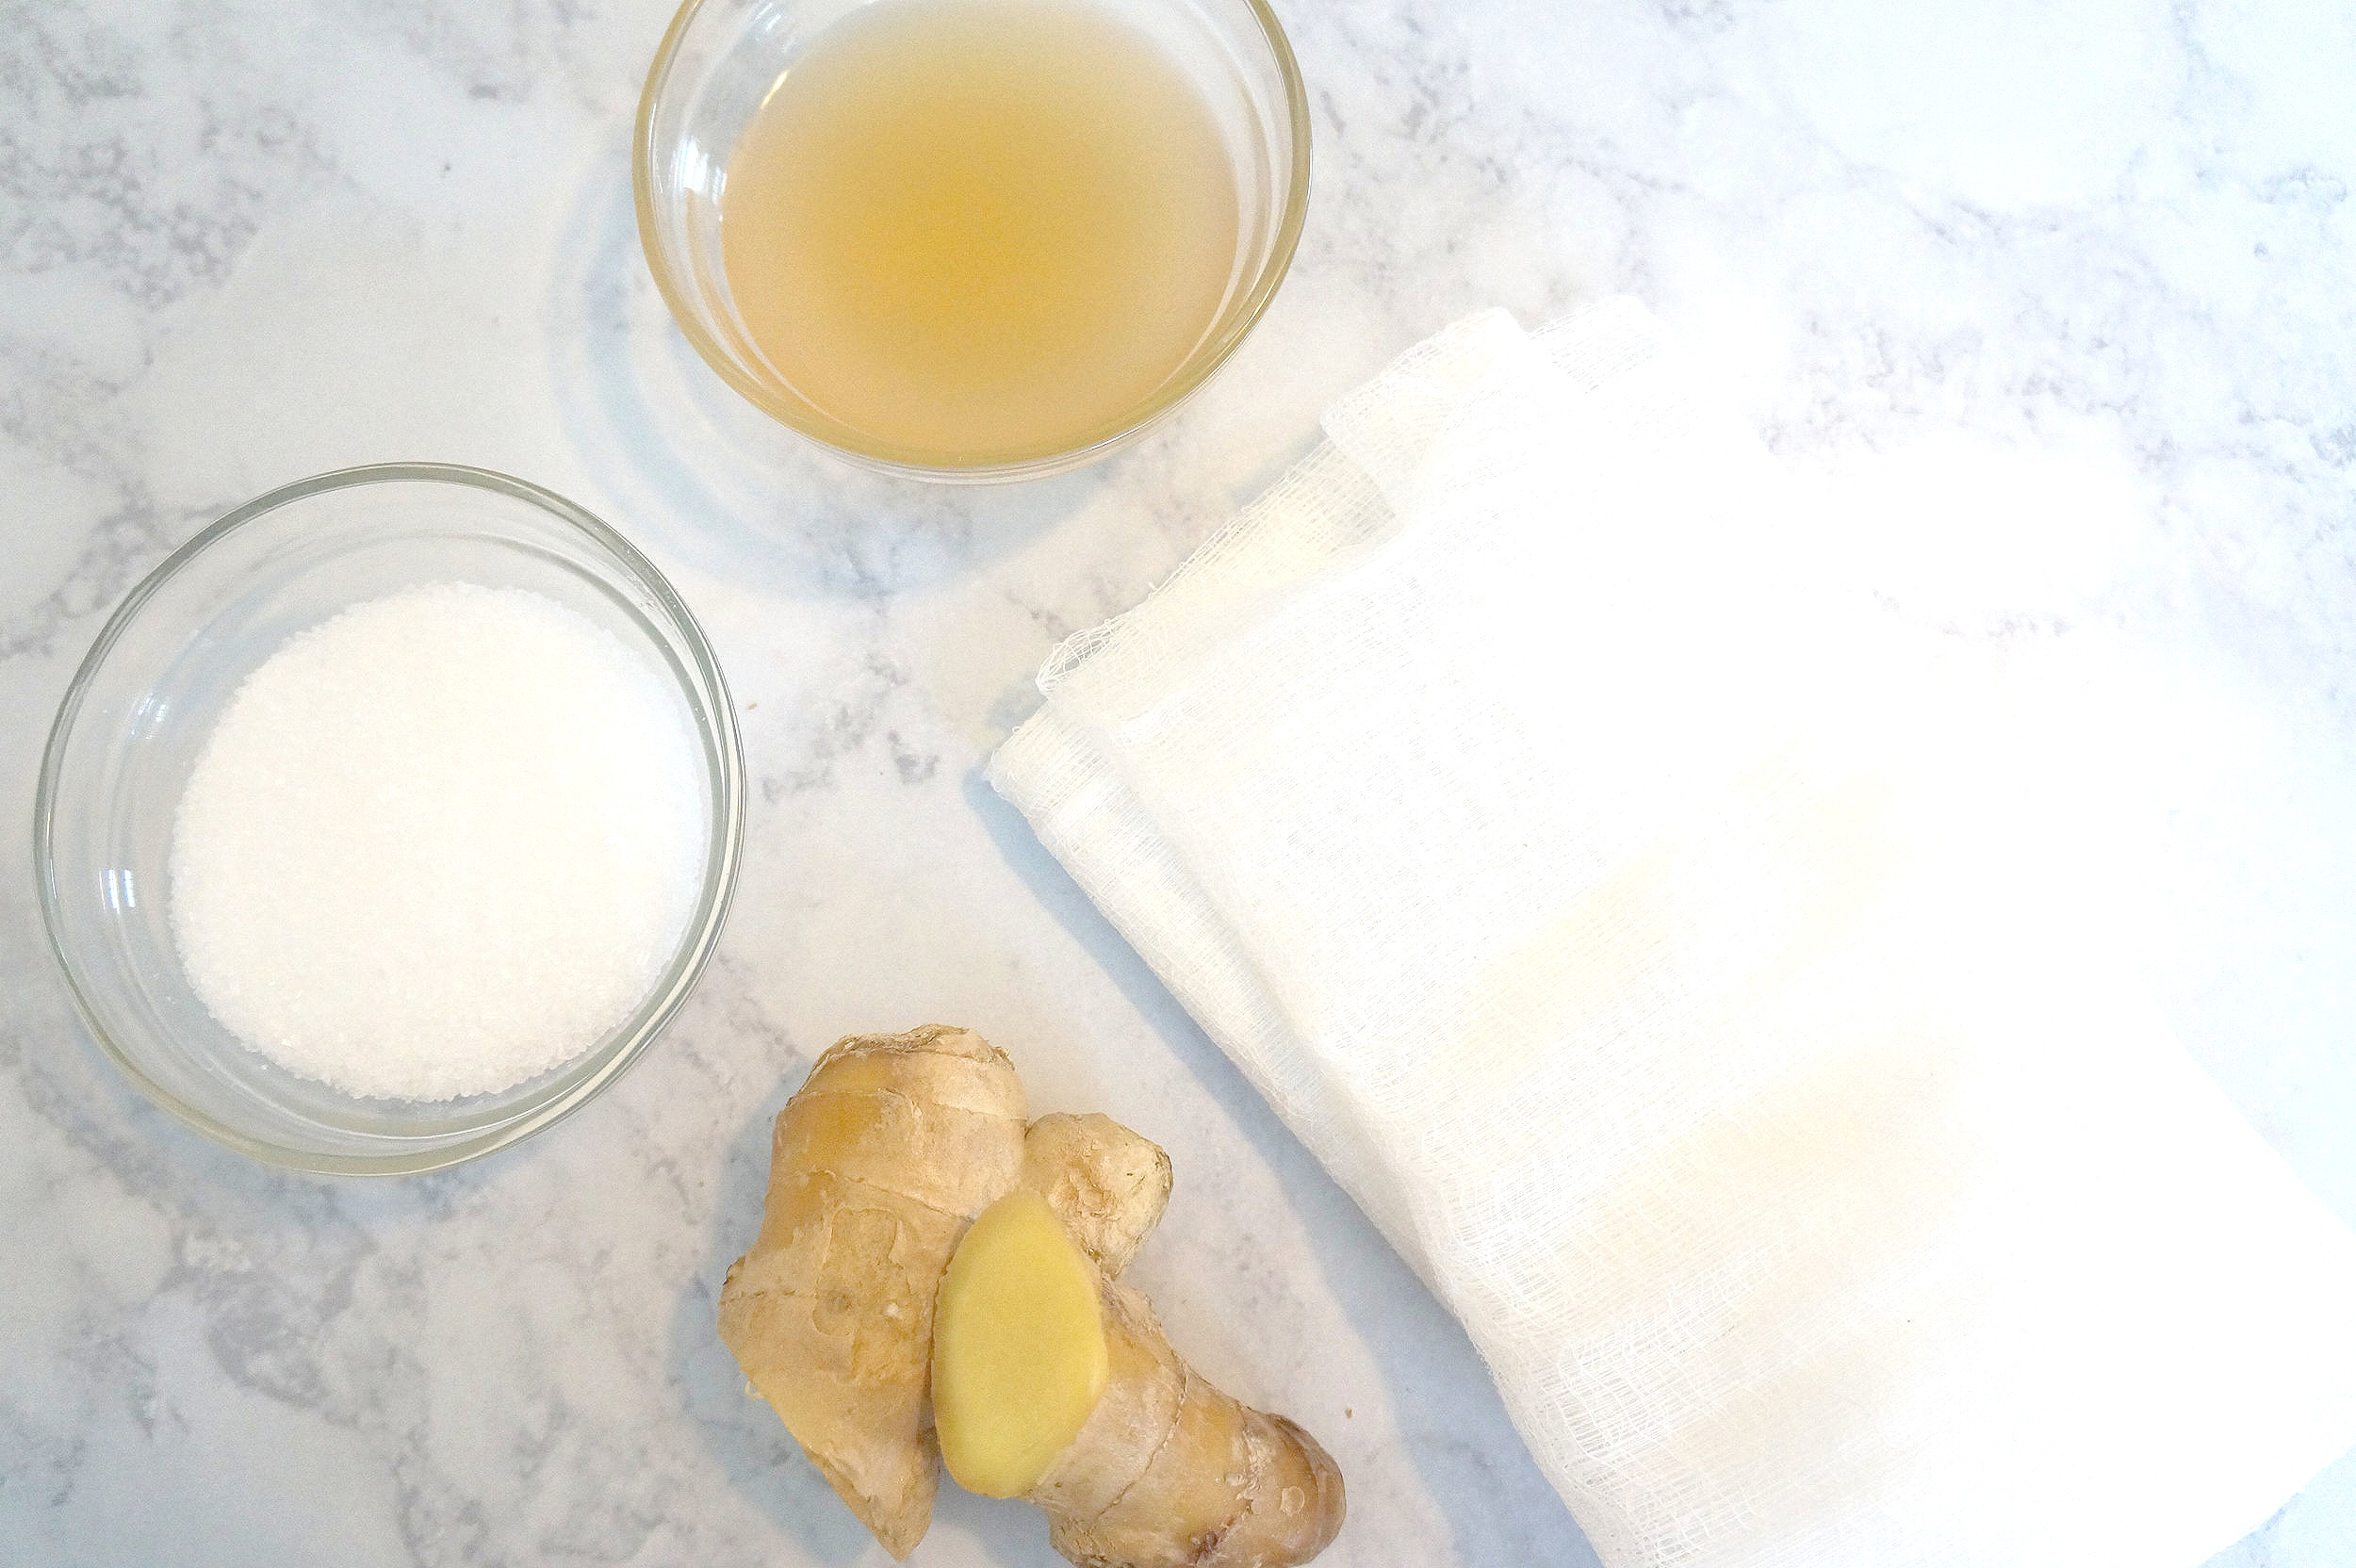 In Search of Our Gardens Memphis Wellness Blogger shares two detoxing bath recipes